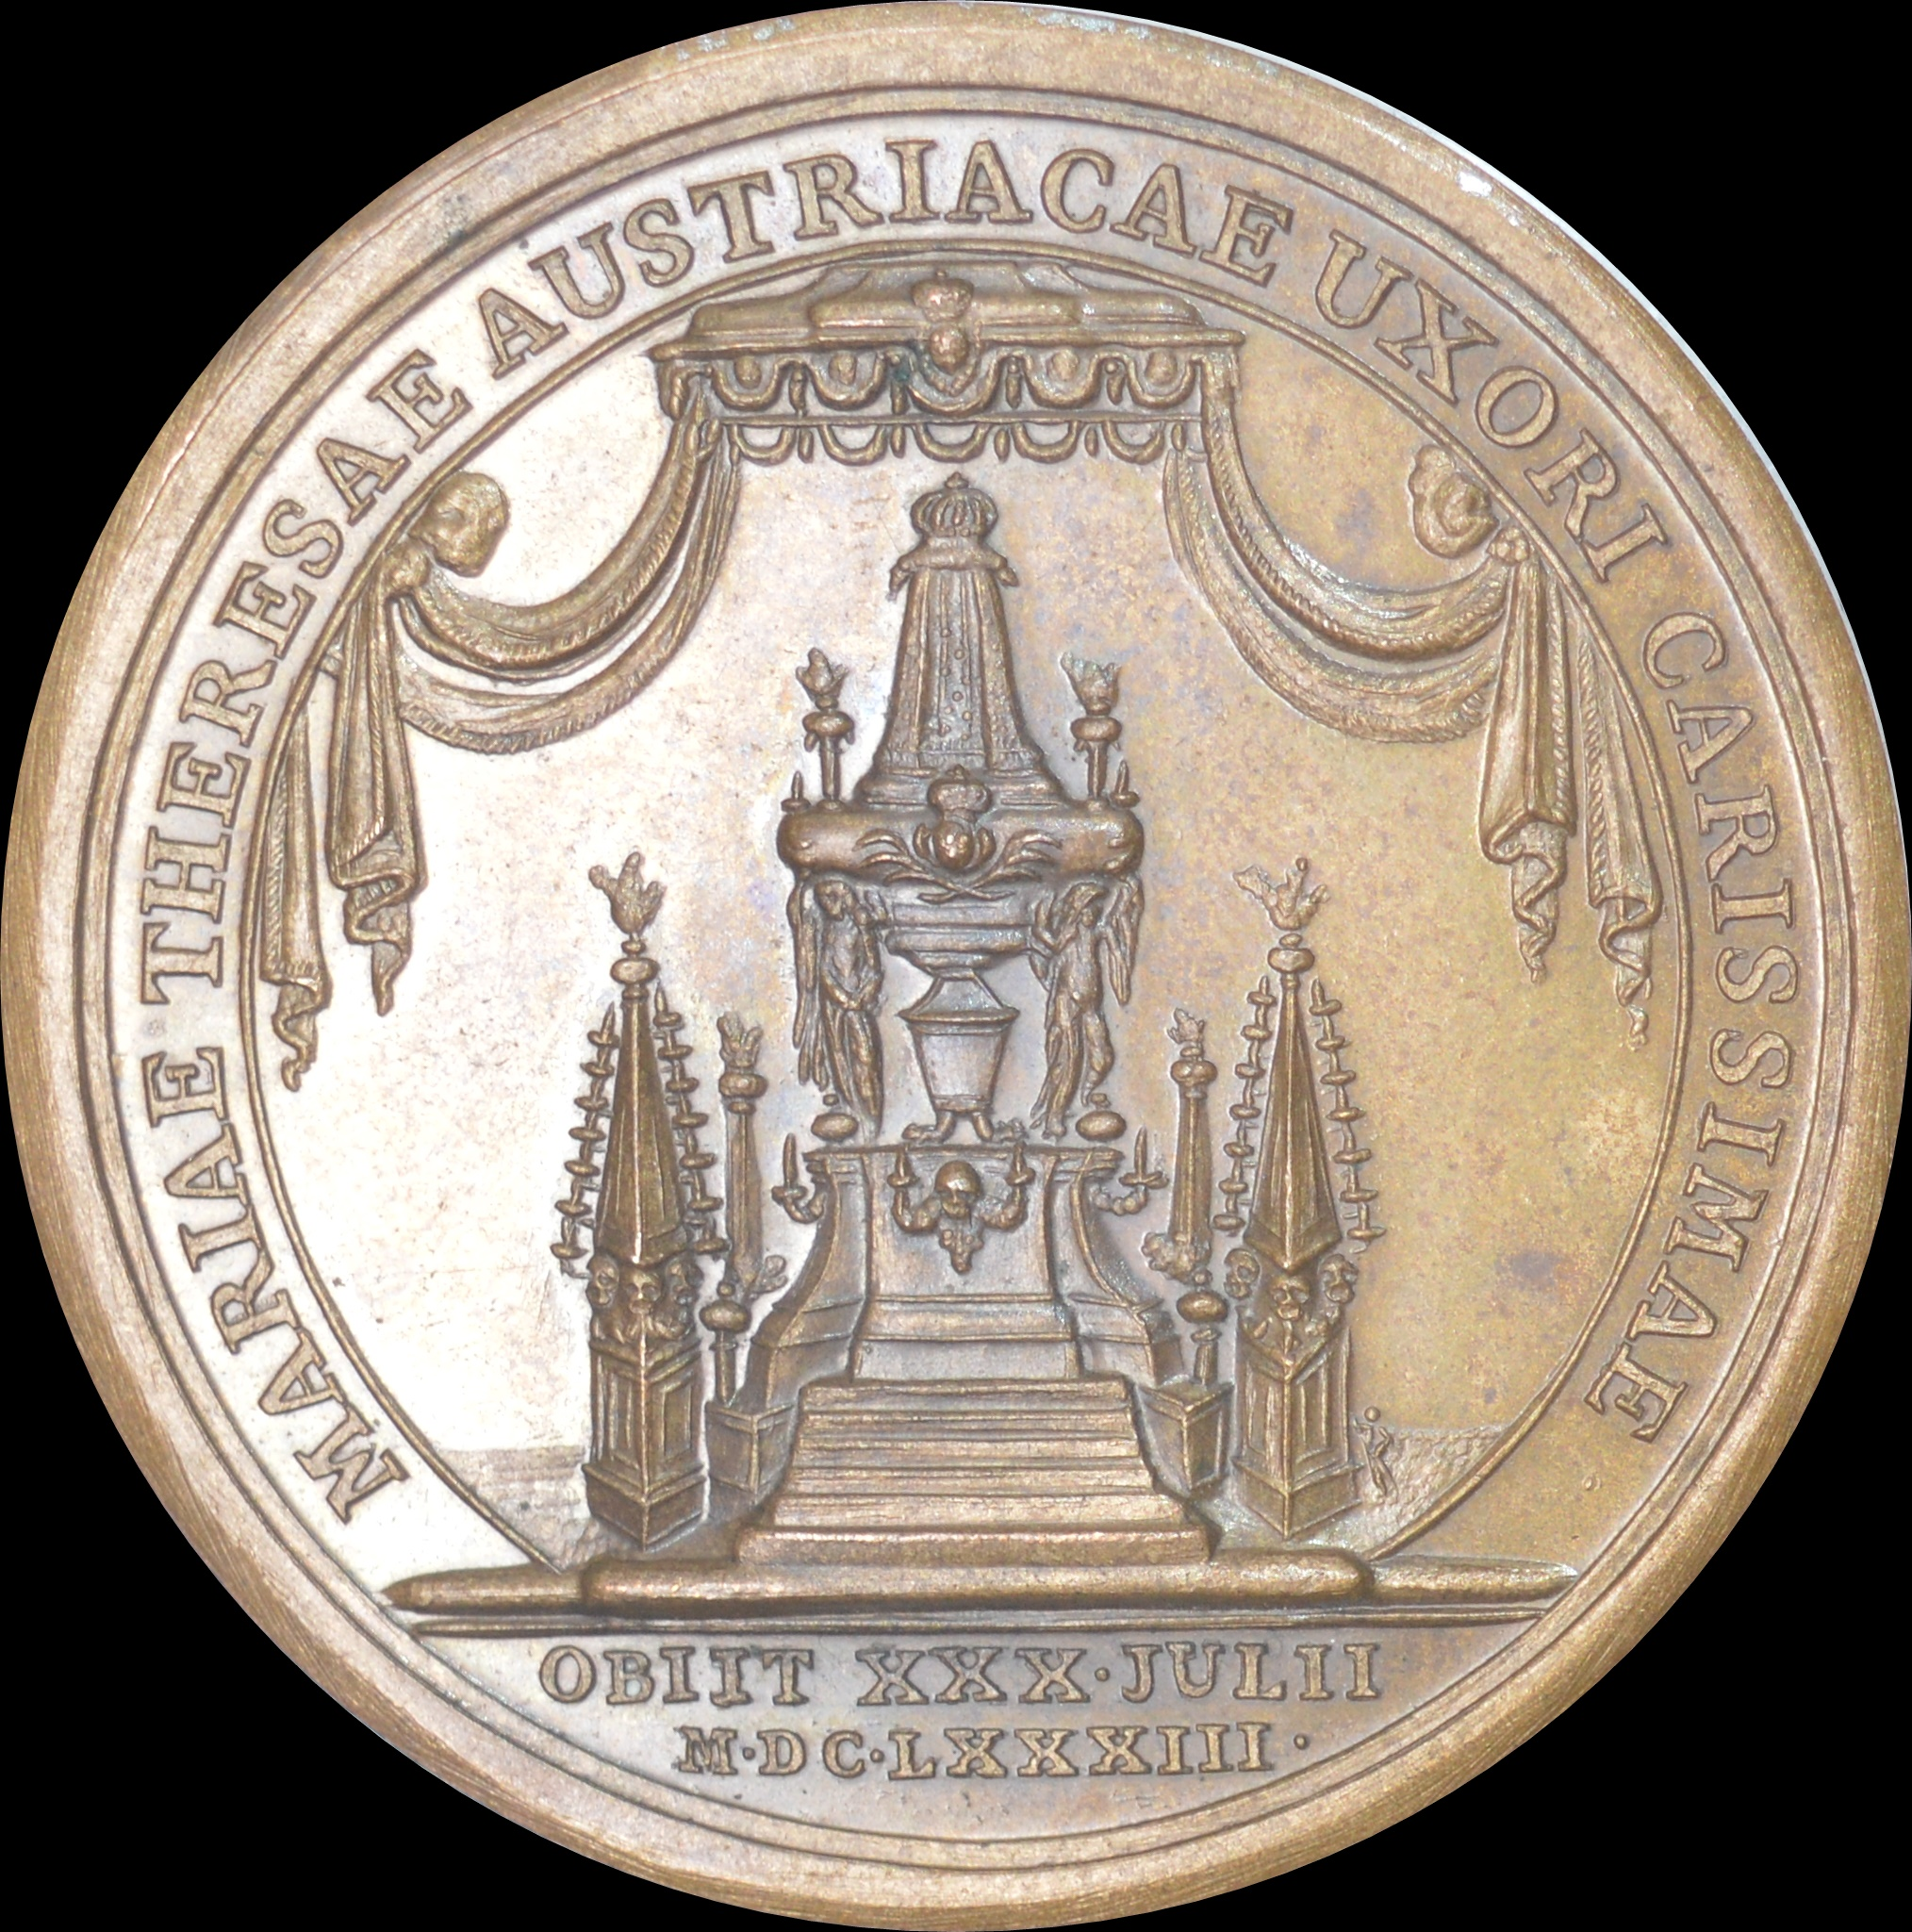 France, Louis XIV - 1683 Death of the Queen medal by Mauger